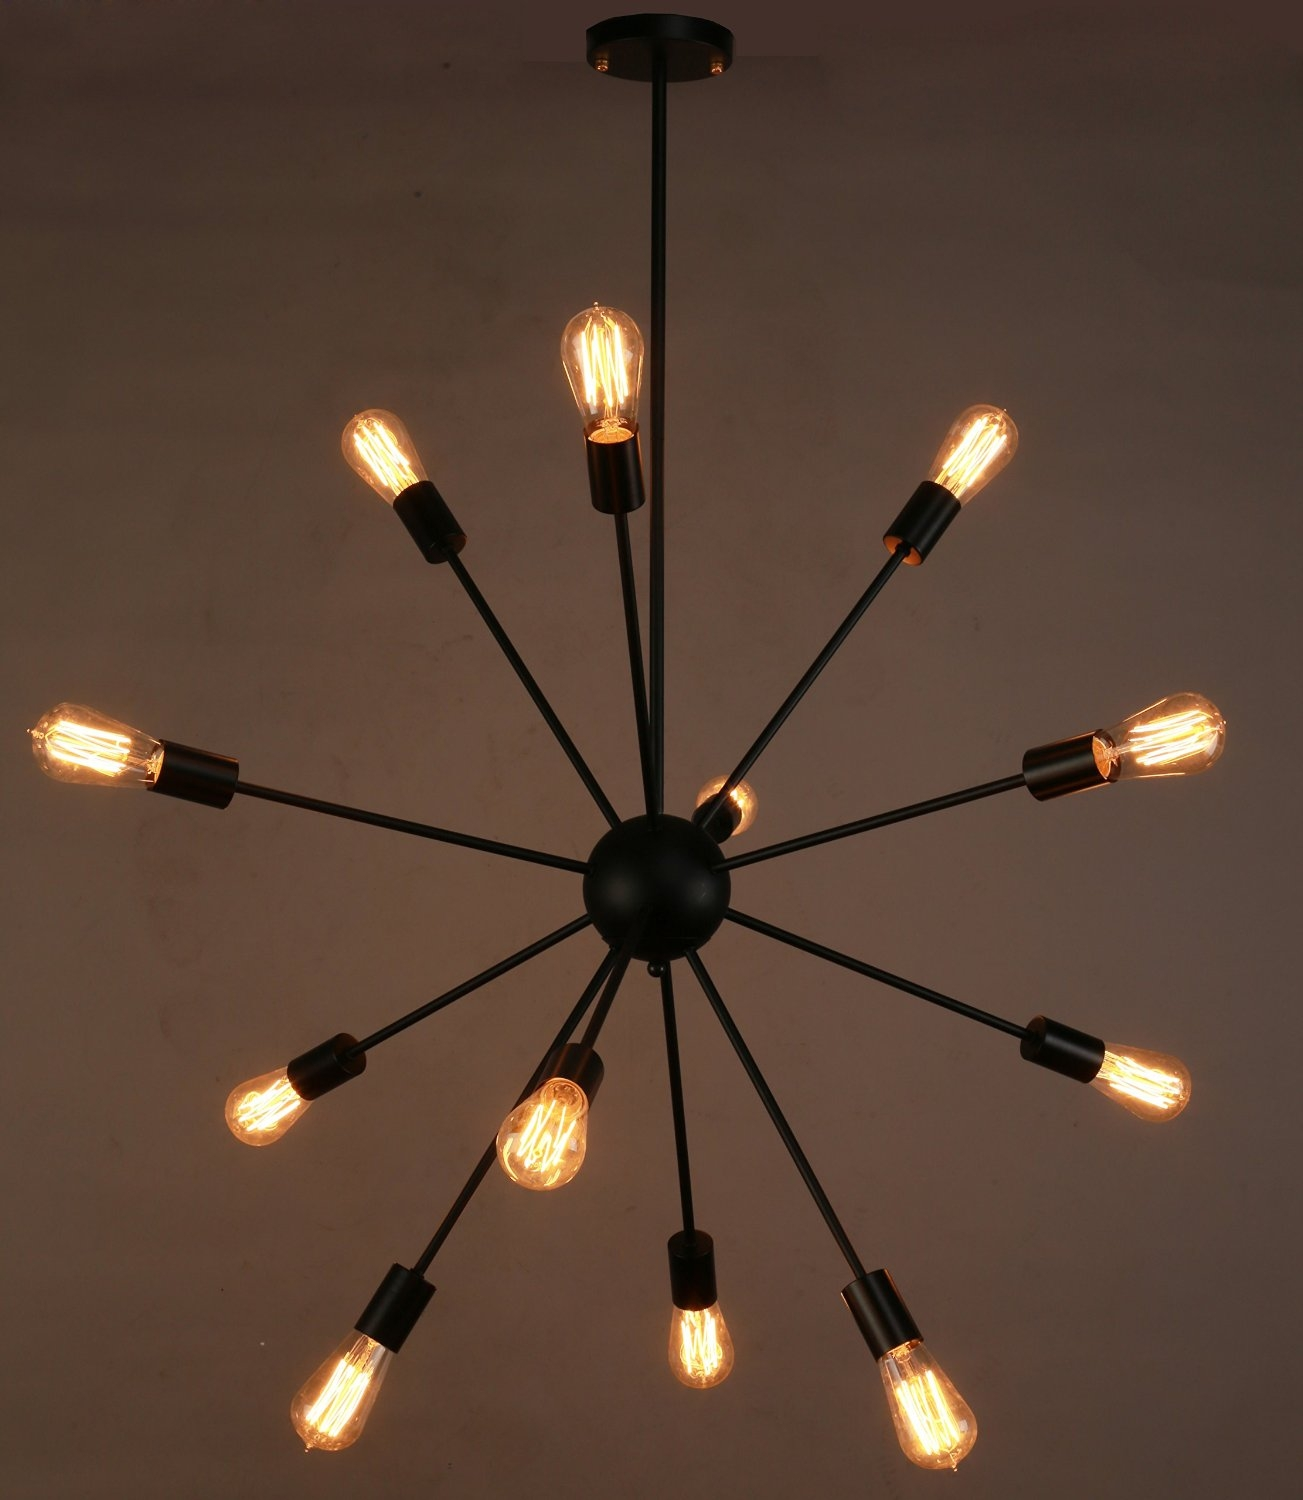 Amazon Vintage E27 Industrial Fixture Retro Pendant Light Inside Retro Chandeliers (Image 2 of 15)